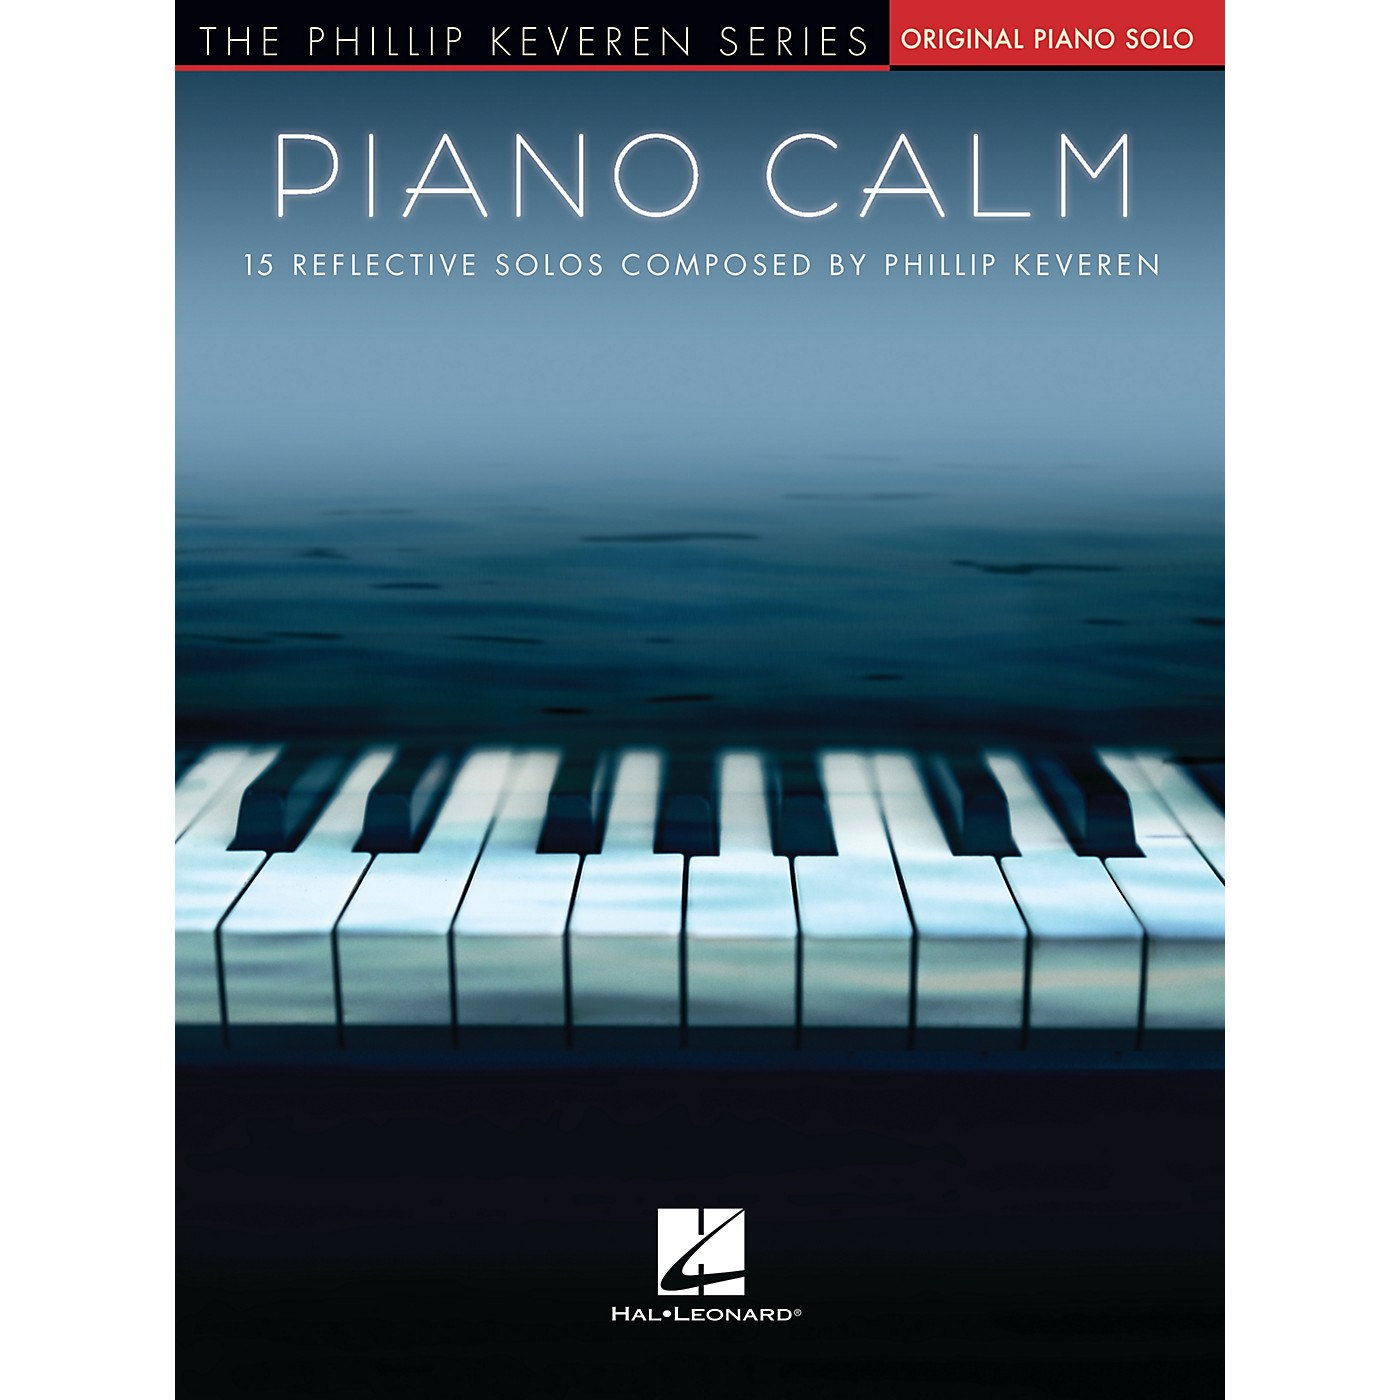 Hal Leonard Piano Calm (15 Reflective Solos Composed by Phillip Keveren) Piano Solo Songbook thumbnail